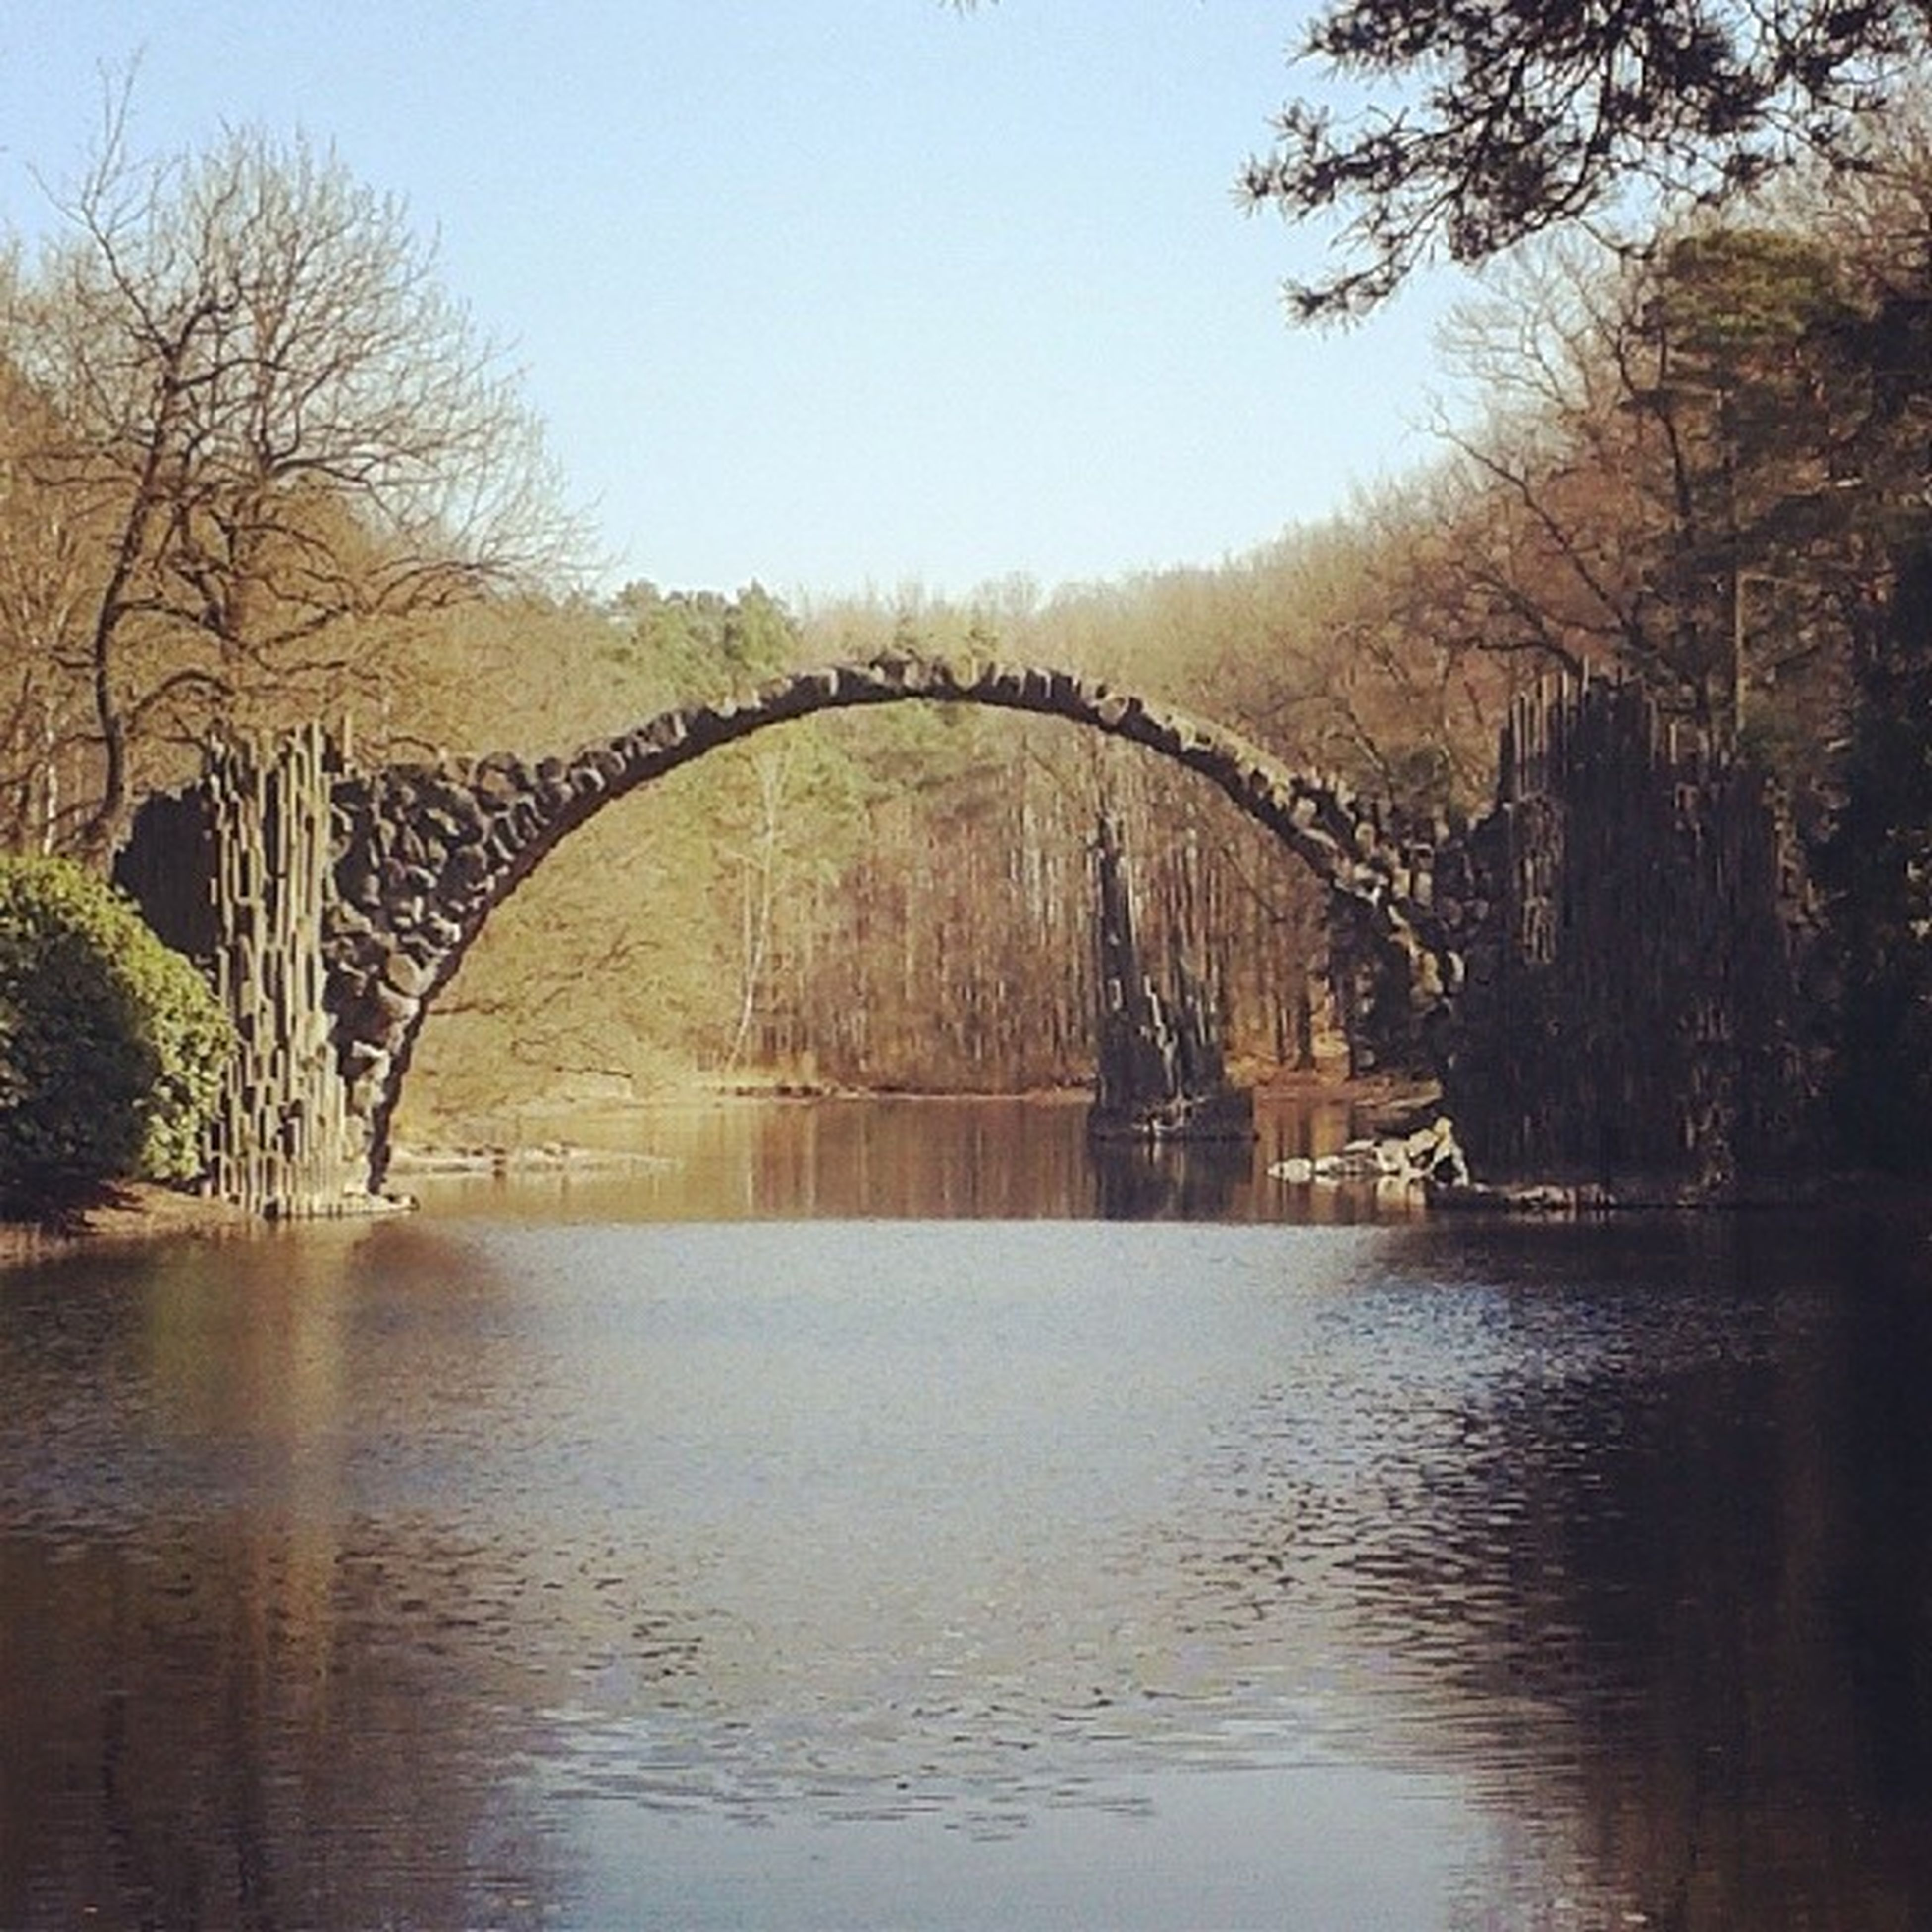 connection, bridge - man made structure, built structure, architecture, tree, water, river, arch bridge, bridge, reflection, waterfront, clear sky, arch, tranquility, bare tree, engineering, lake, tranquil scene, nature, sky